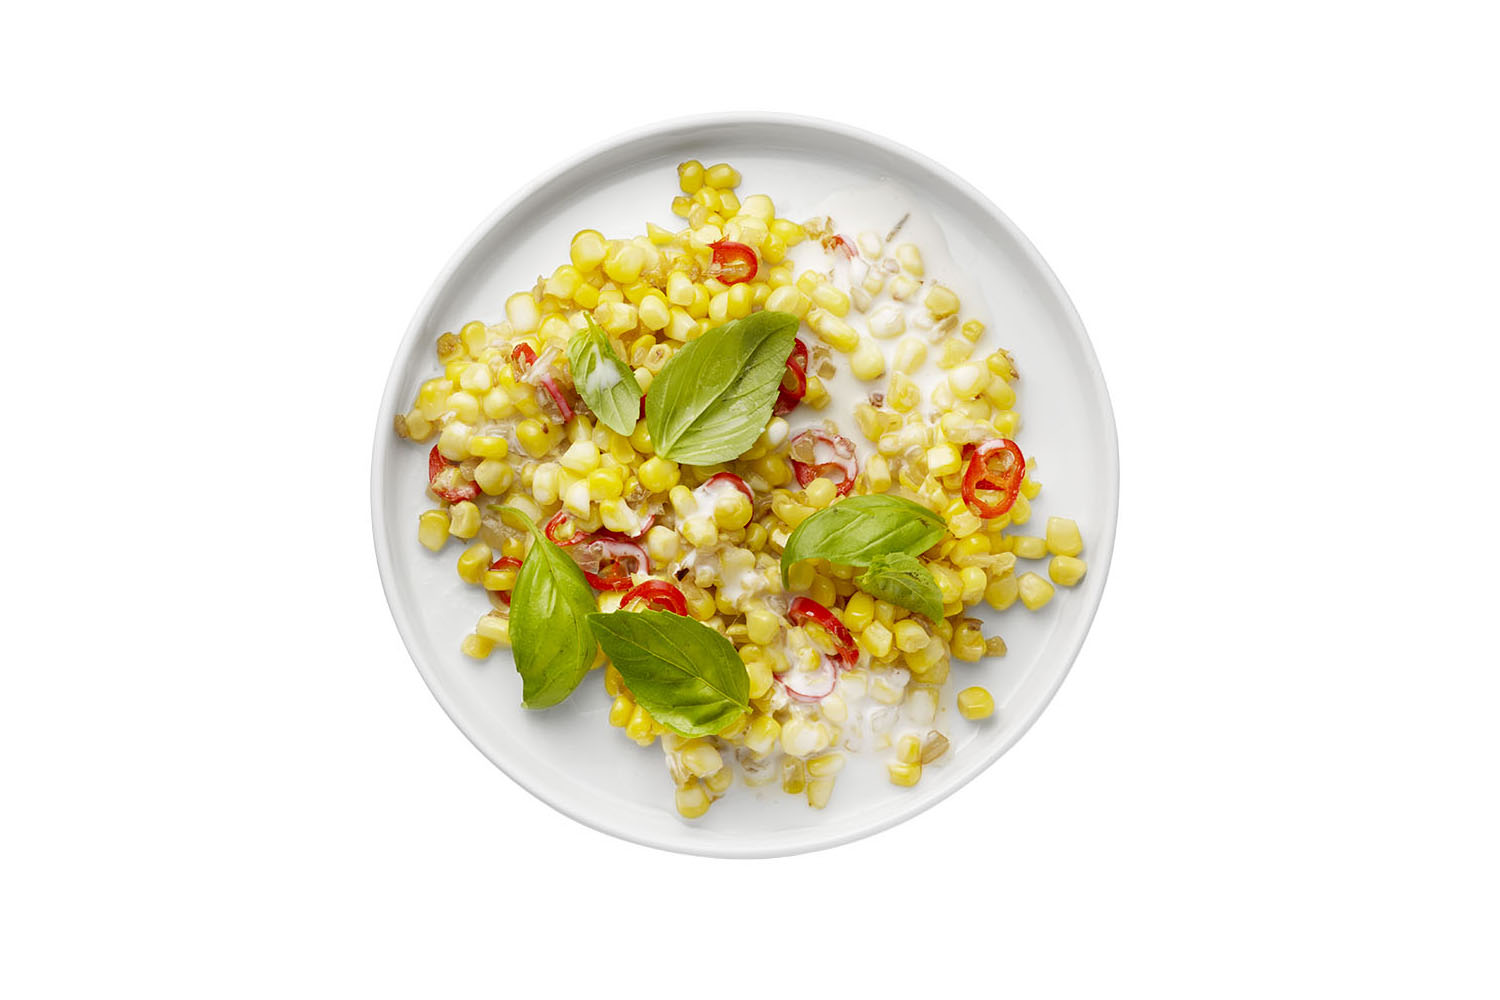 Sautéed Corn With Coconut Milk, Chili, and Basil